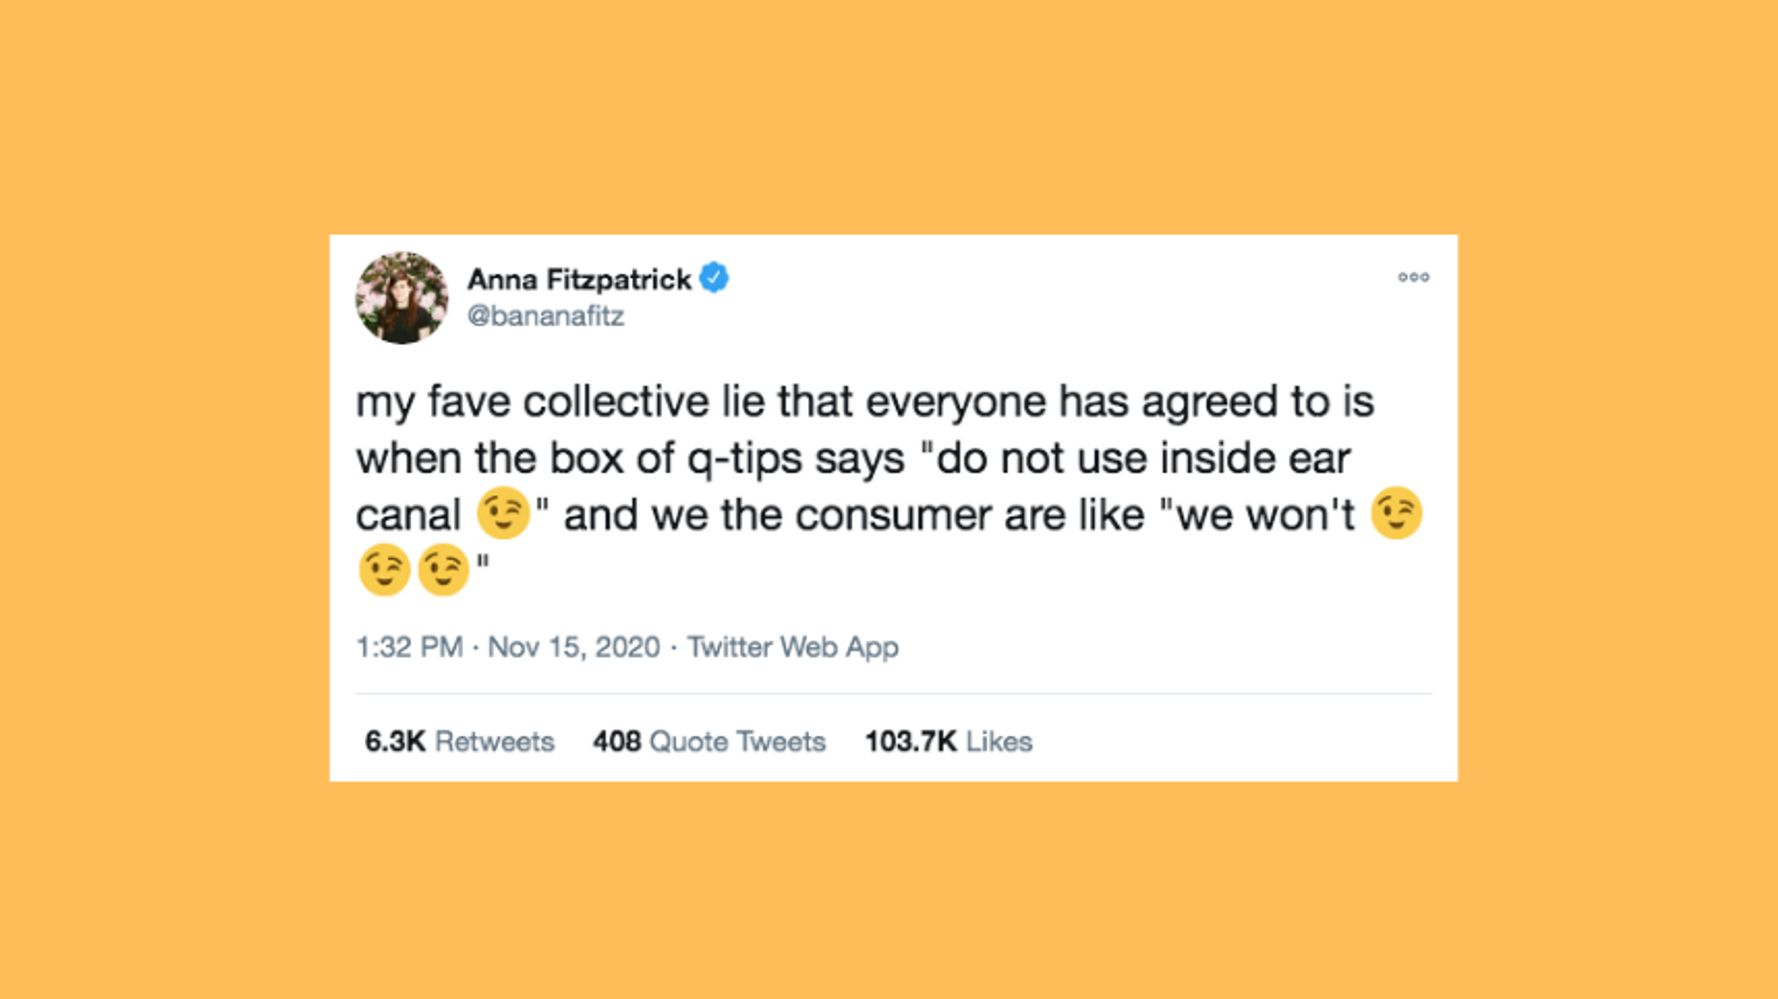 The 20 Funniest Tweets From Women This Week (Nov. 14-20)